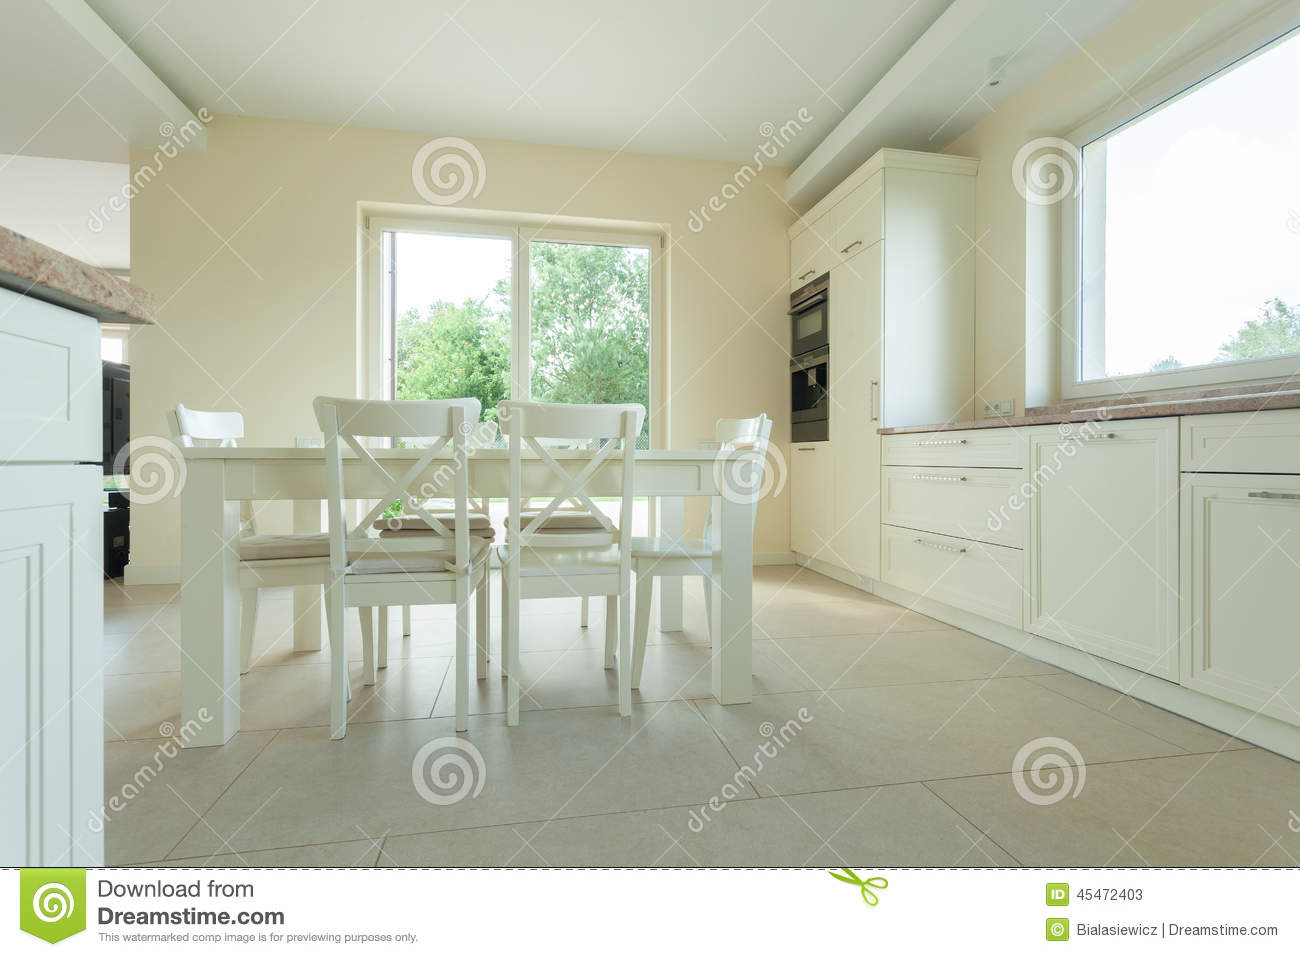 Table blanche dans la cuisine moderne photo stock   image: 45472403